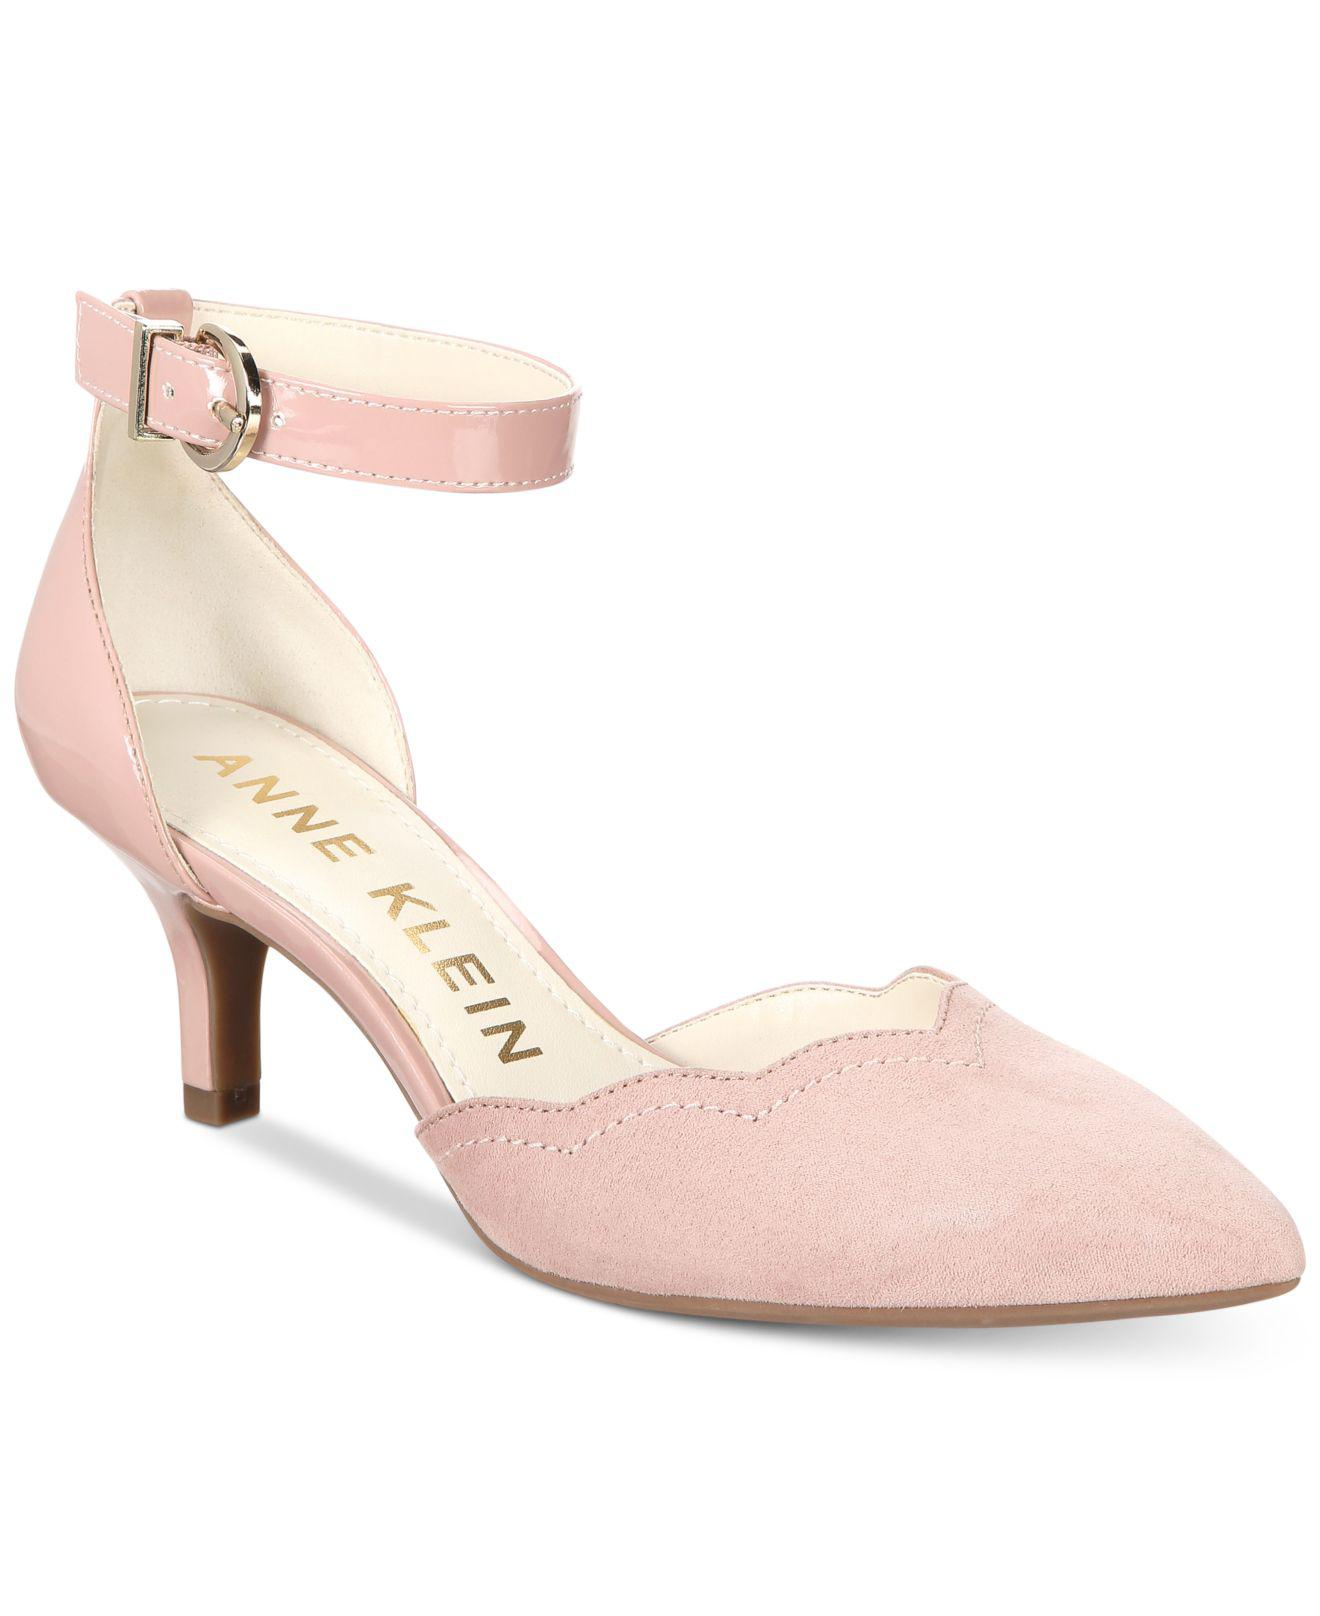 5493dc21d445 Lyst - Anne Klein Findaway Pointed-toe Pumps in Pink